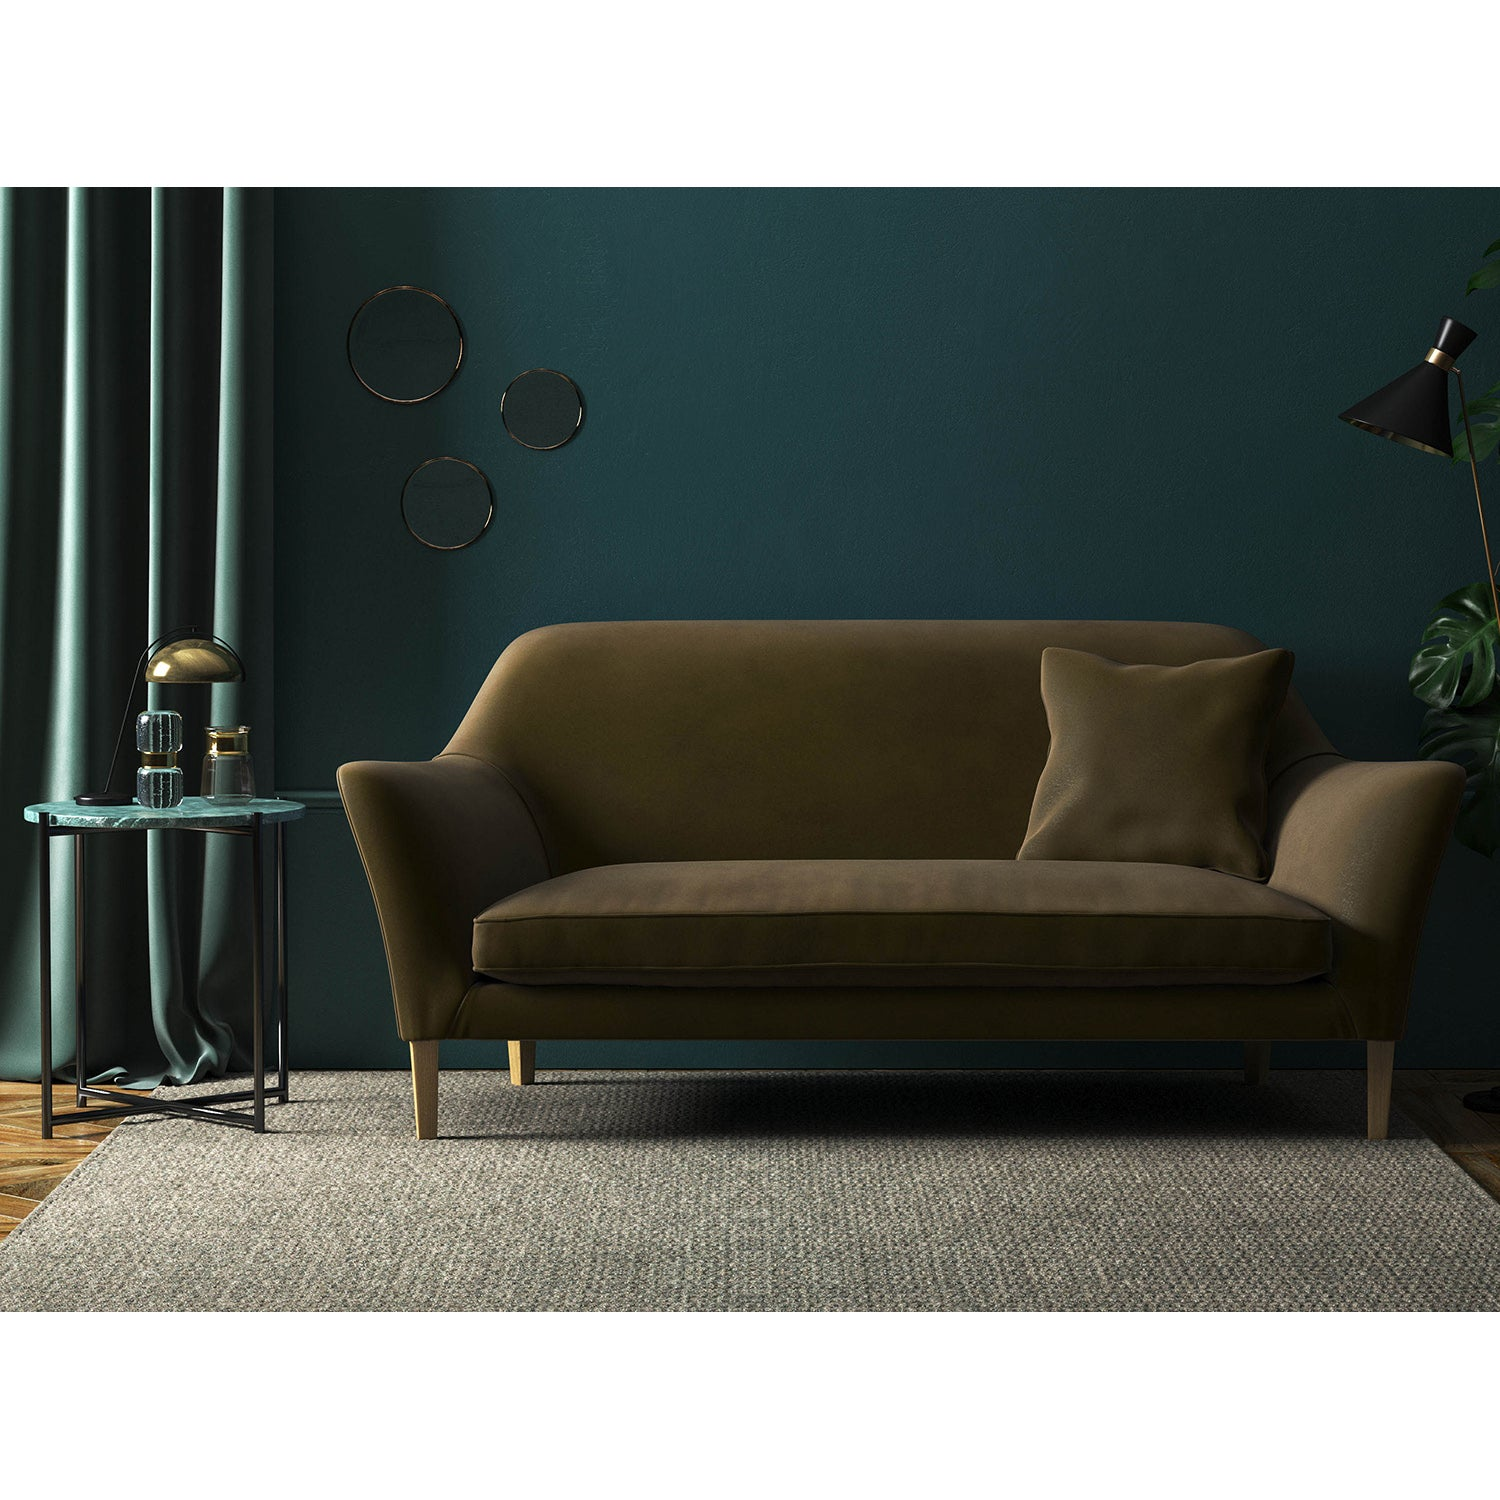 Sofa in a khaki green velvet upholstery fabric with a stain resistant finish